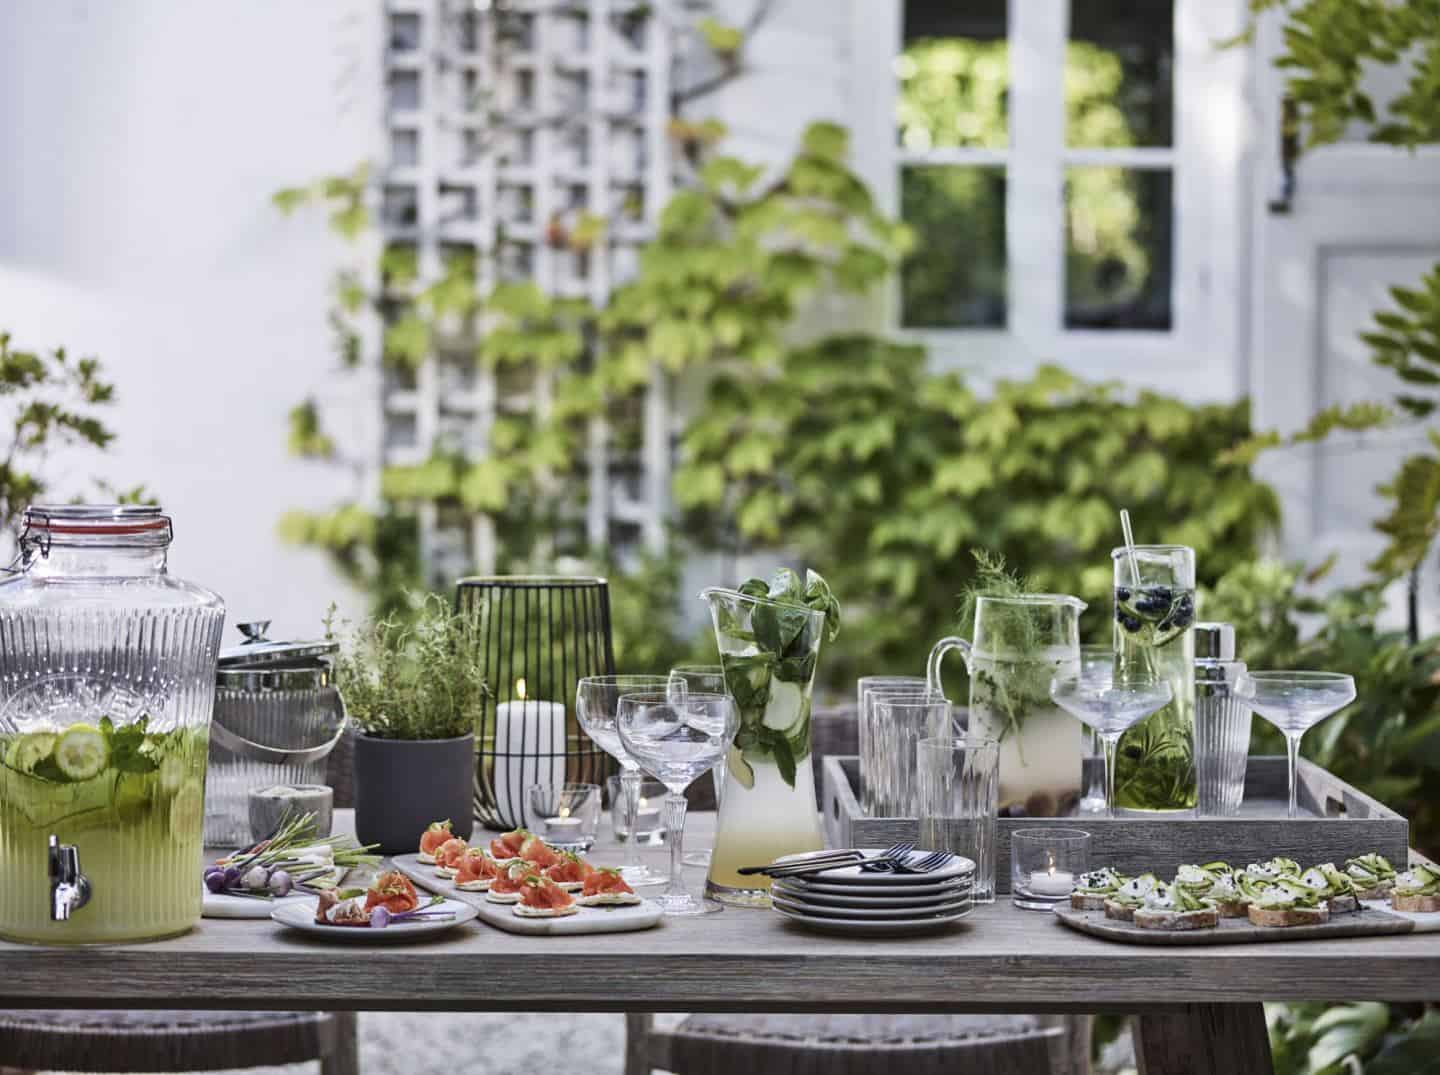 Eating al fresco creates holiday vibes for a summer staycation in your garden